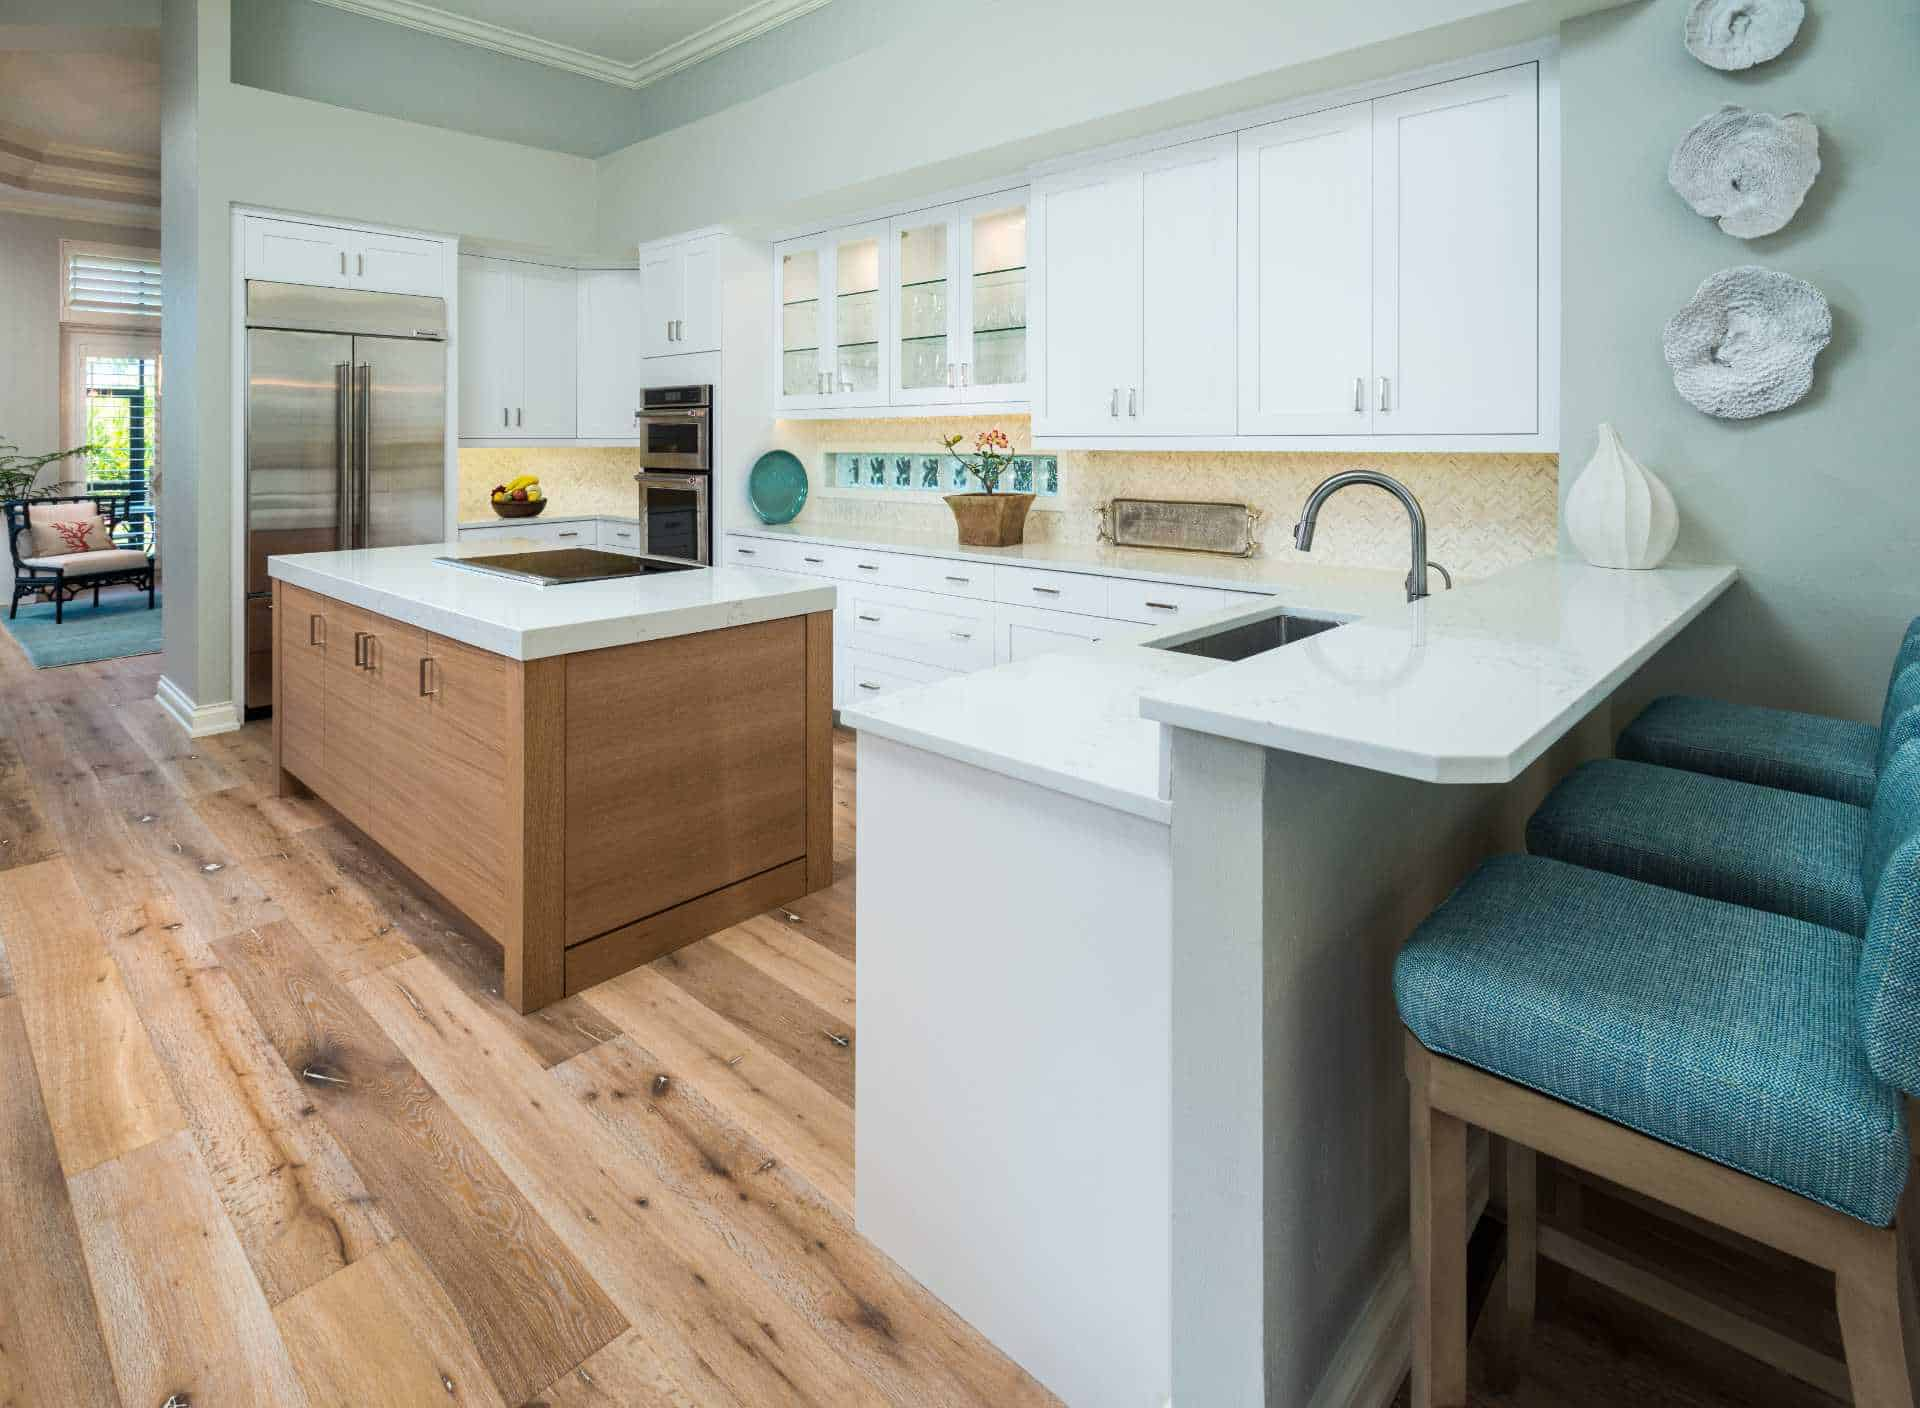 A fully-furnished open kitchen with an island